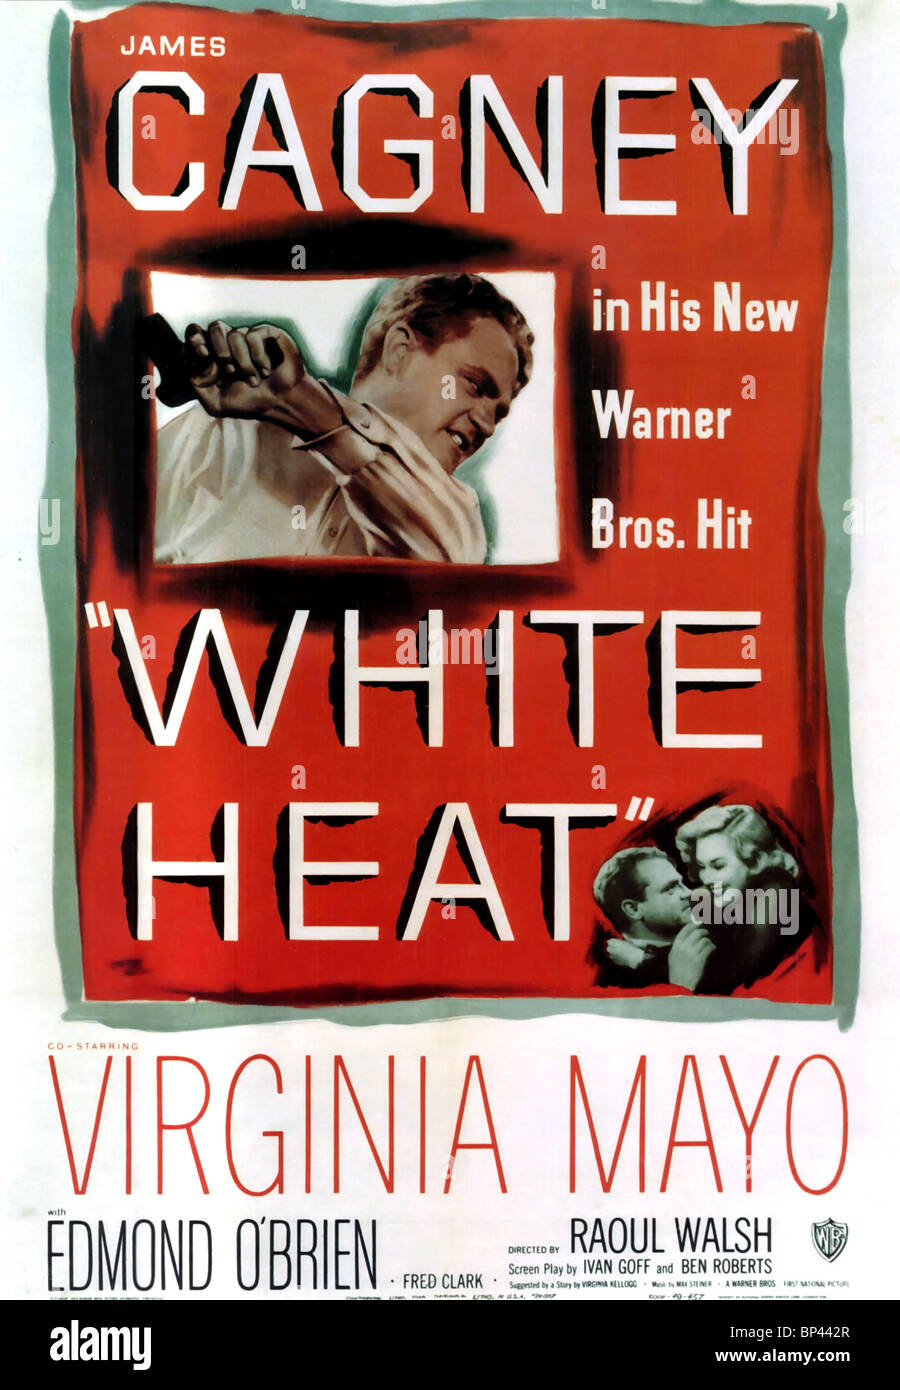 JAMES CAGNEY, VIRGINIA MAYO POSTER, WHITE HEAT, 1949 - Stock Image